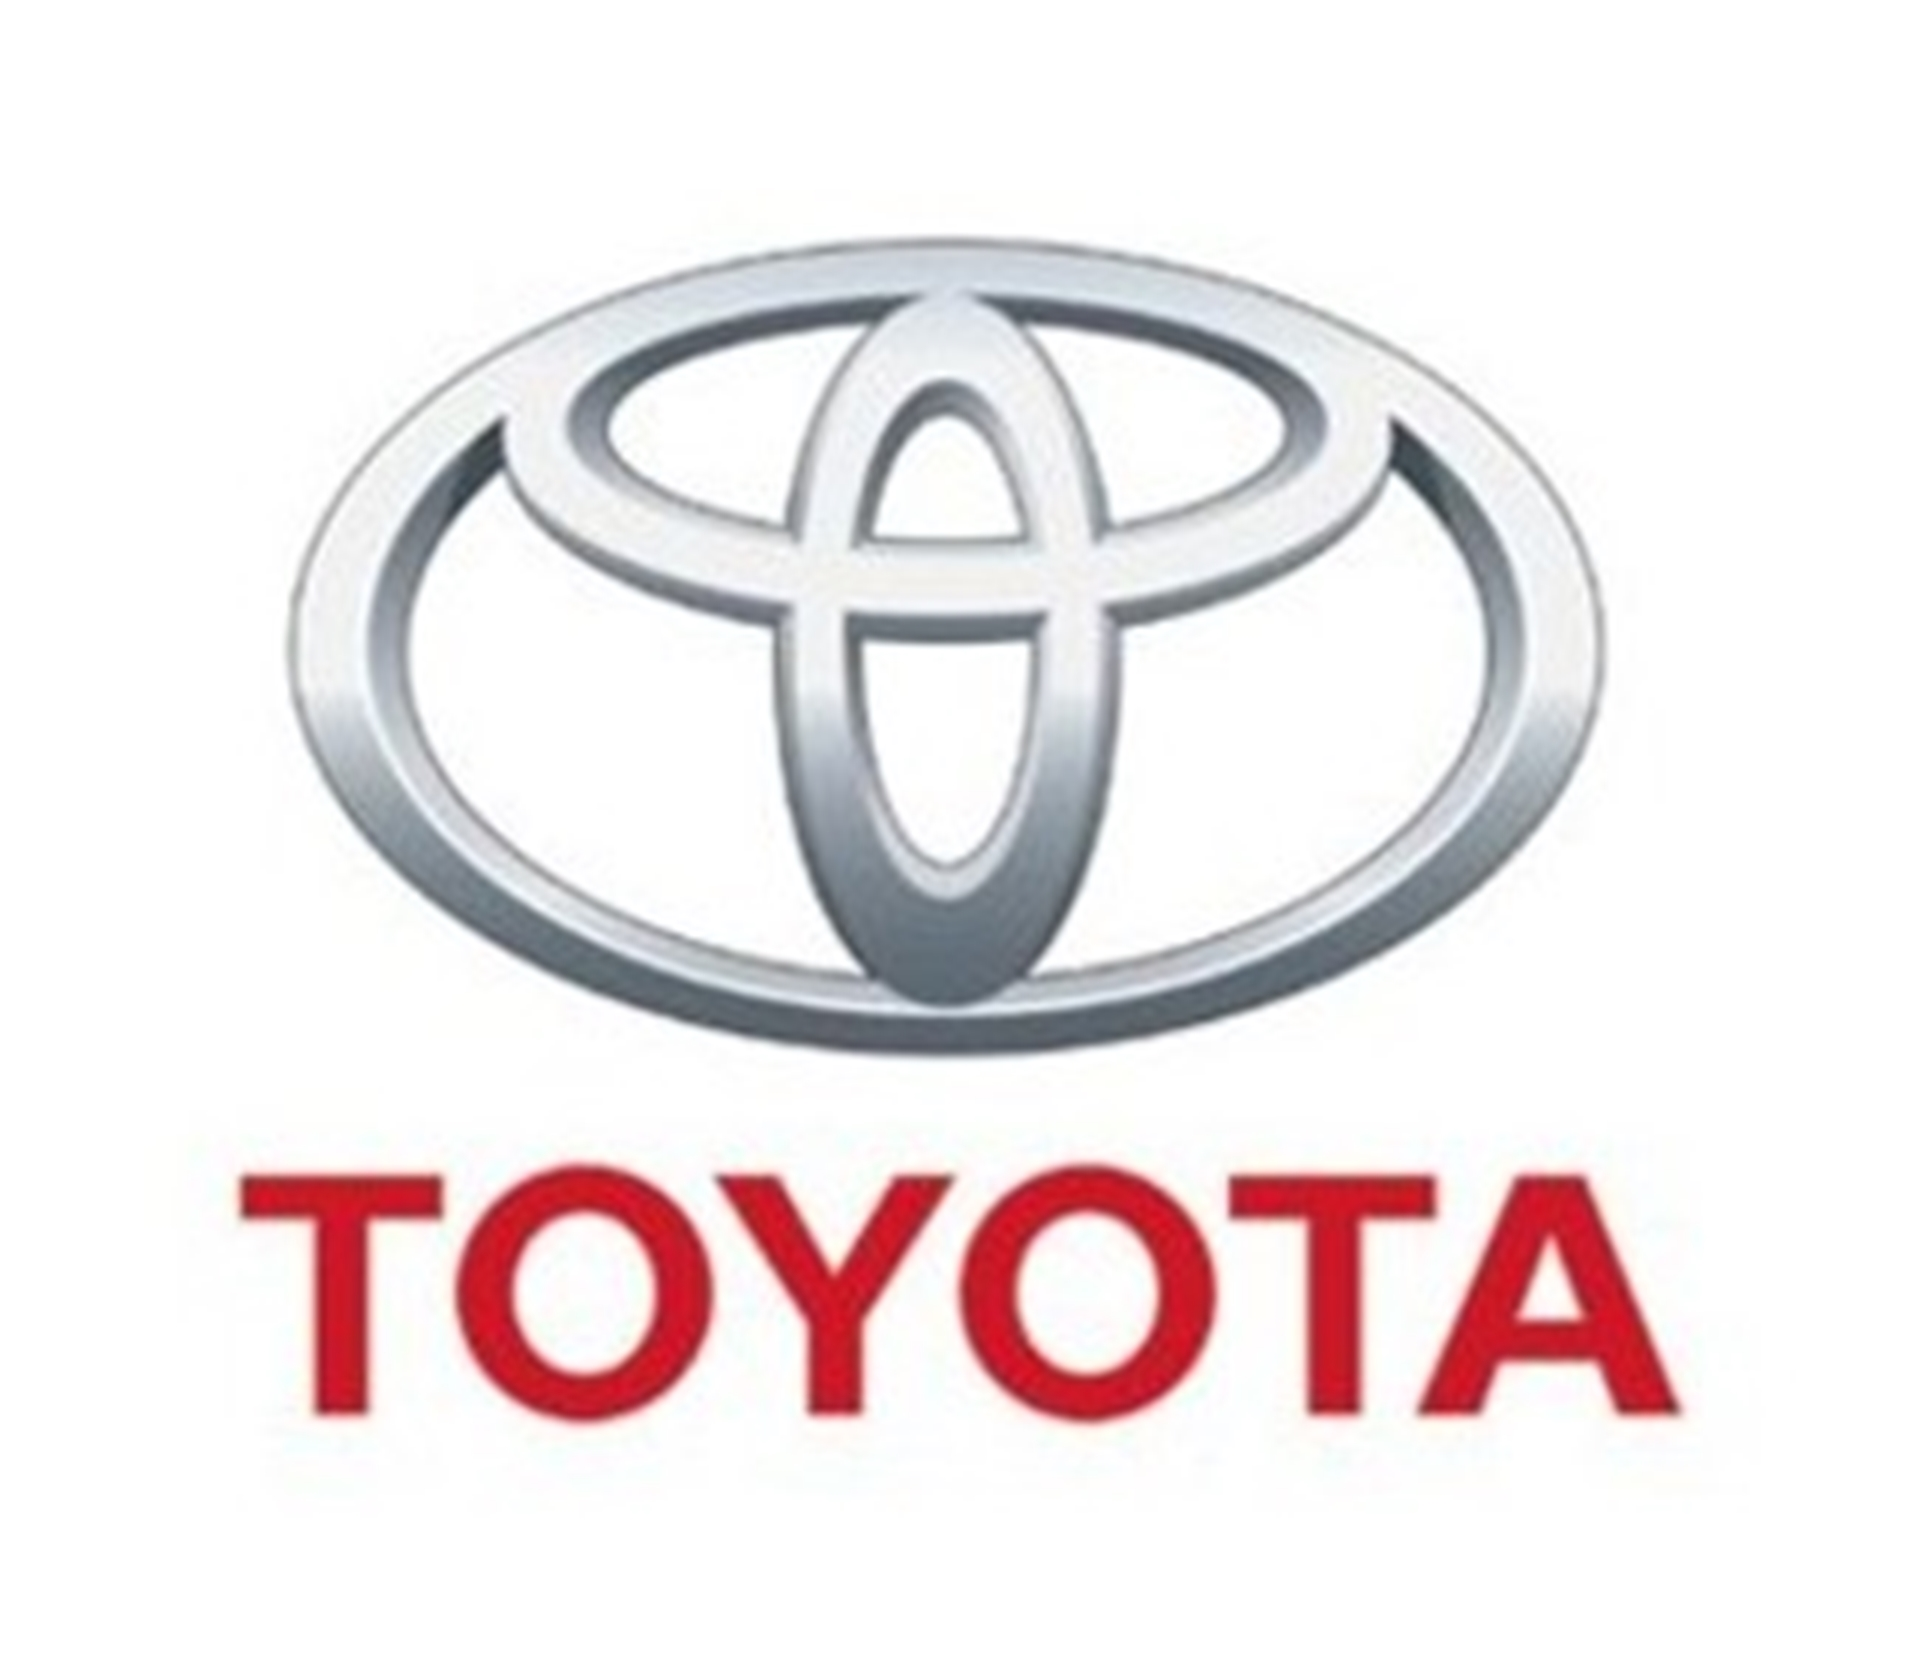 Toyota City, Japan, November 20, 2011u2014 Toyota Motor Corporation (TMC)  Announces That Toyota Motor Manufacturing, Kentucky, Inc. (TMMK), TMCu0027s  Vehicle ...